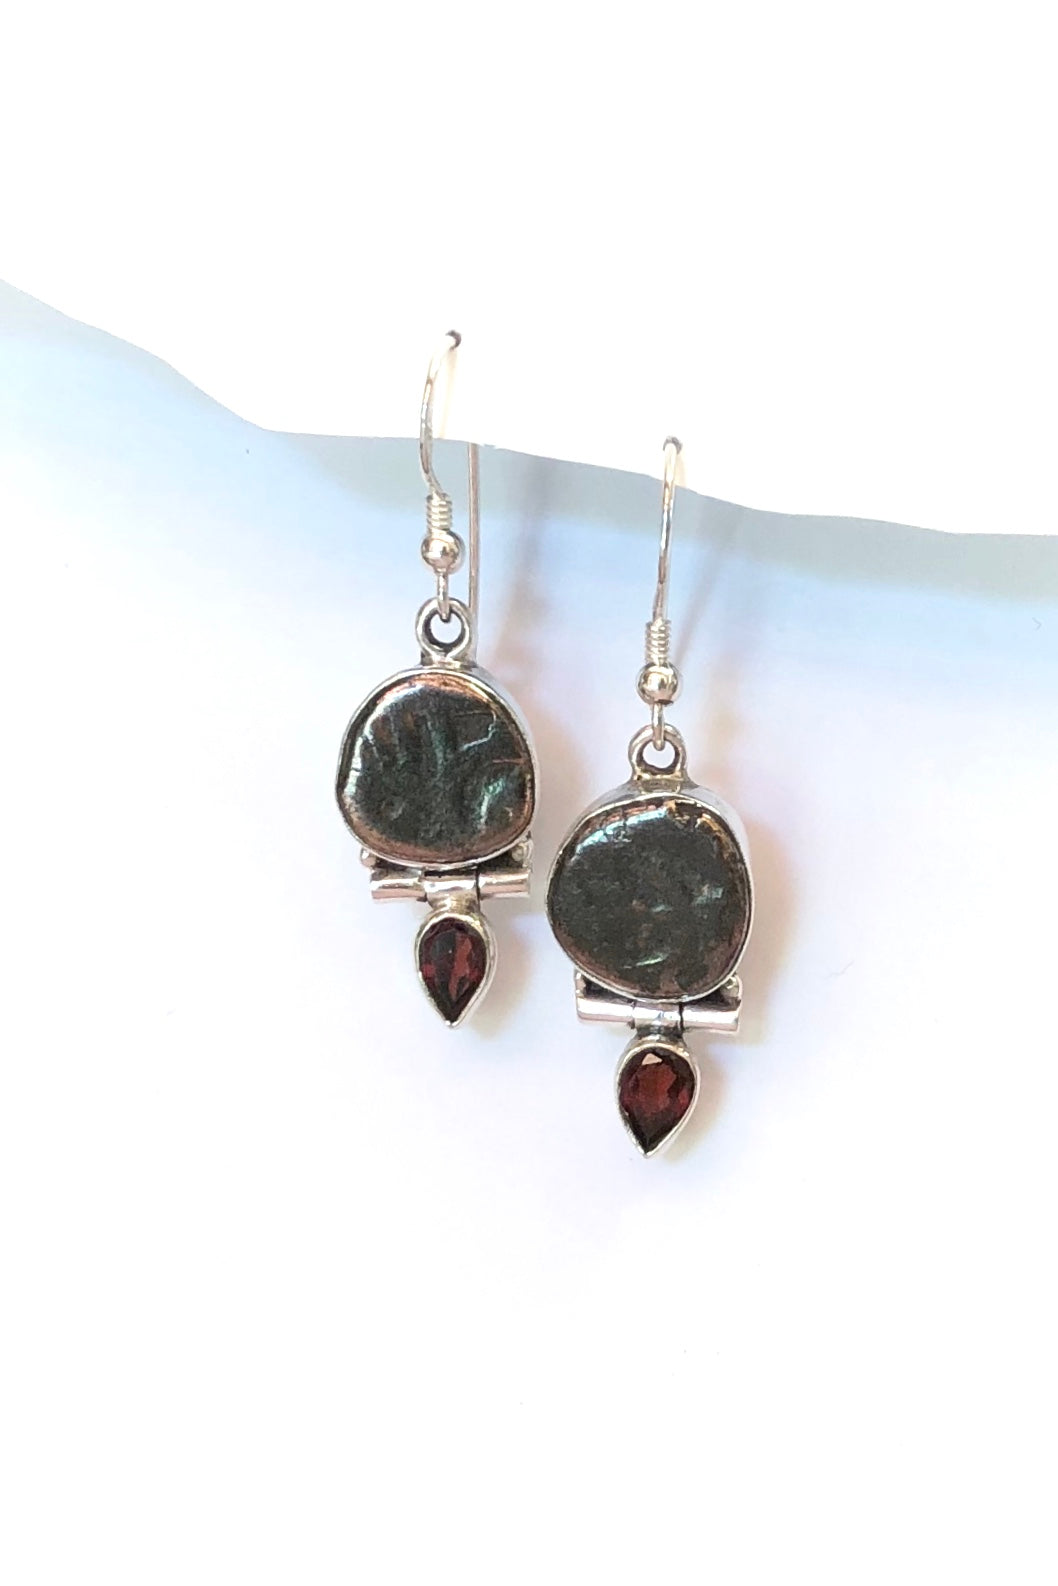 The Echo Earrings Ancient Imprint are 925 silver earrings featuring a metal coin shaped token that has been imprinted with a symbol and pear shaped red garnet gemstone.